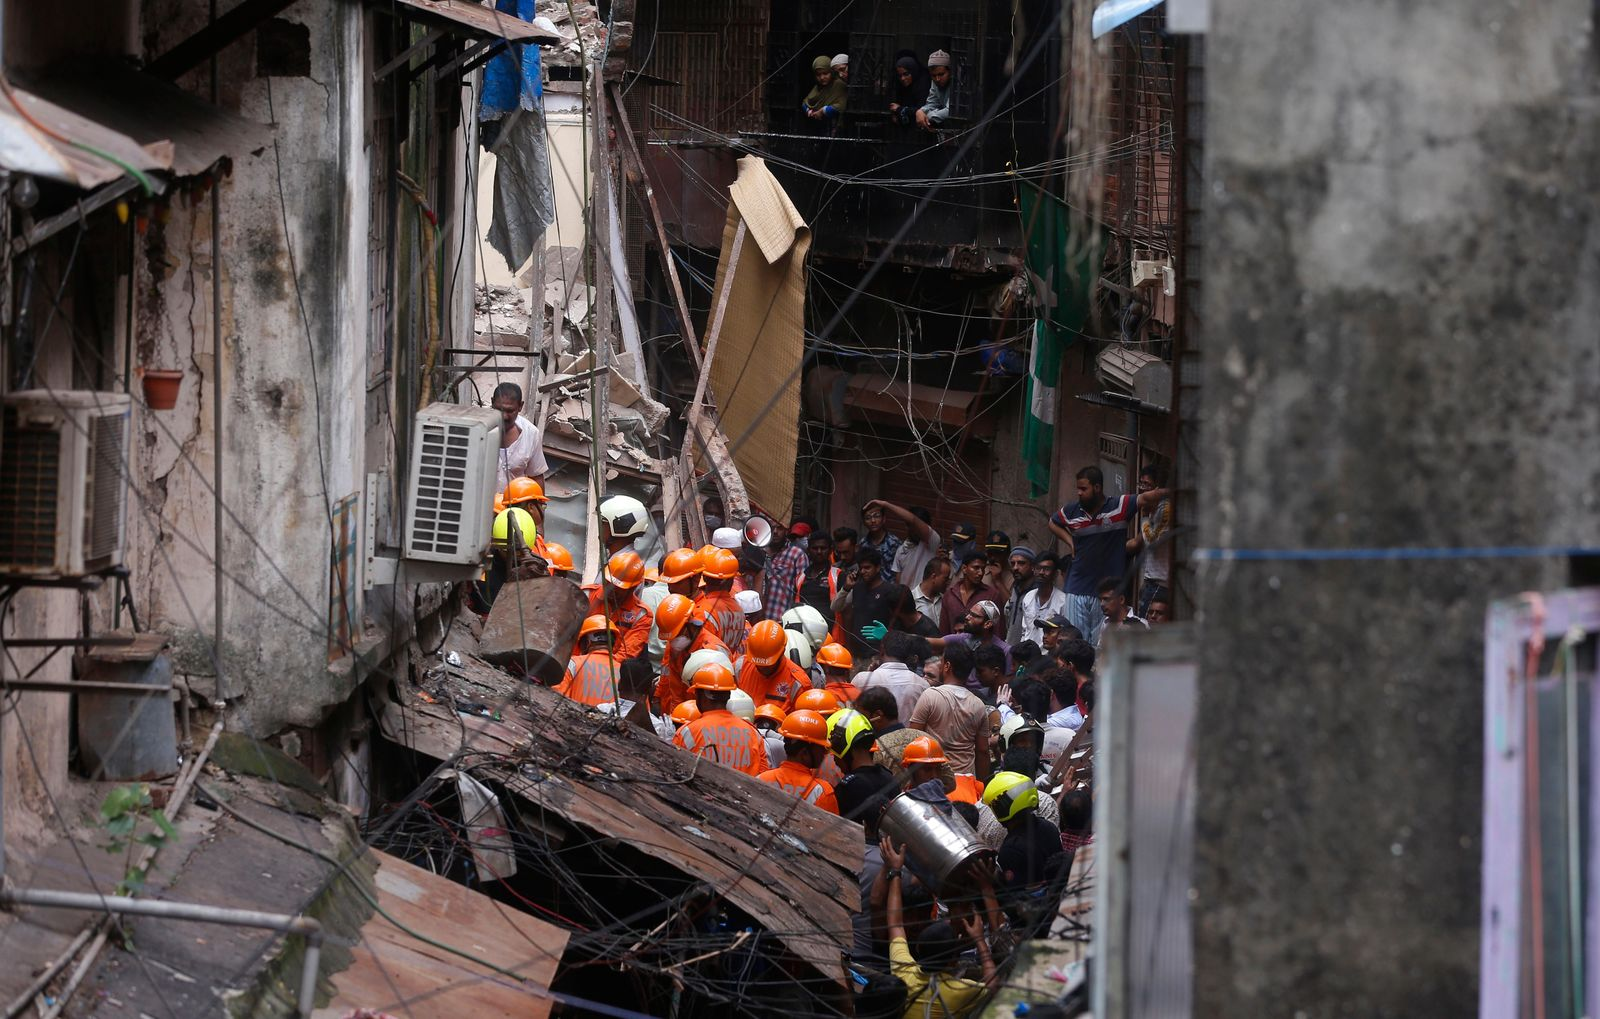 Rescuers work at the site of a building that collapsed in Mumbai, India, Tuesday, July 16, 2019. A four-story residential building collapsed Tuesday in a crowded neighborhood in Mumbai, India's financial and entertainment capital, and several people were feared trapped in the rubble, an official said. (AP Photo/Rafiq Maqbool)